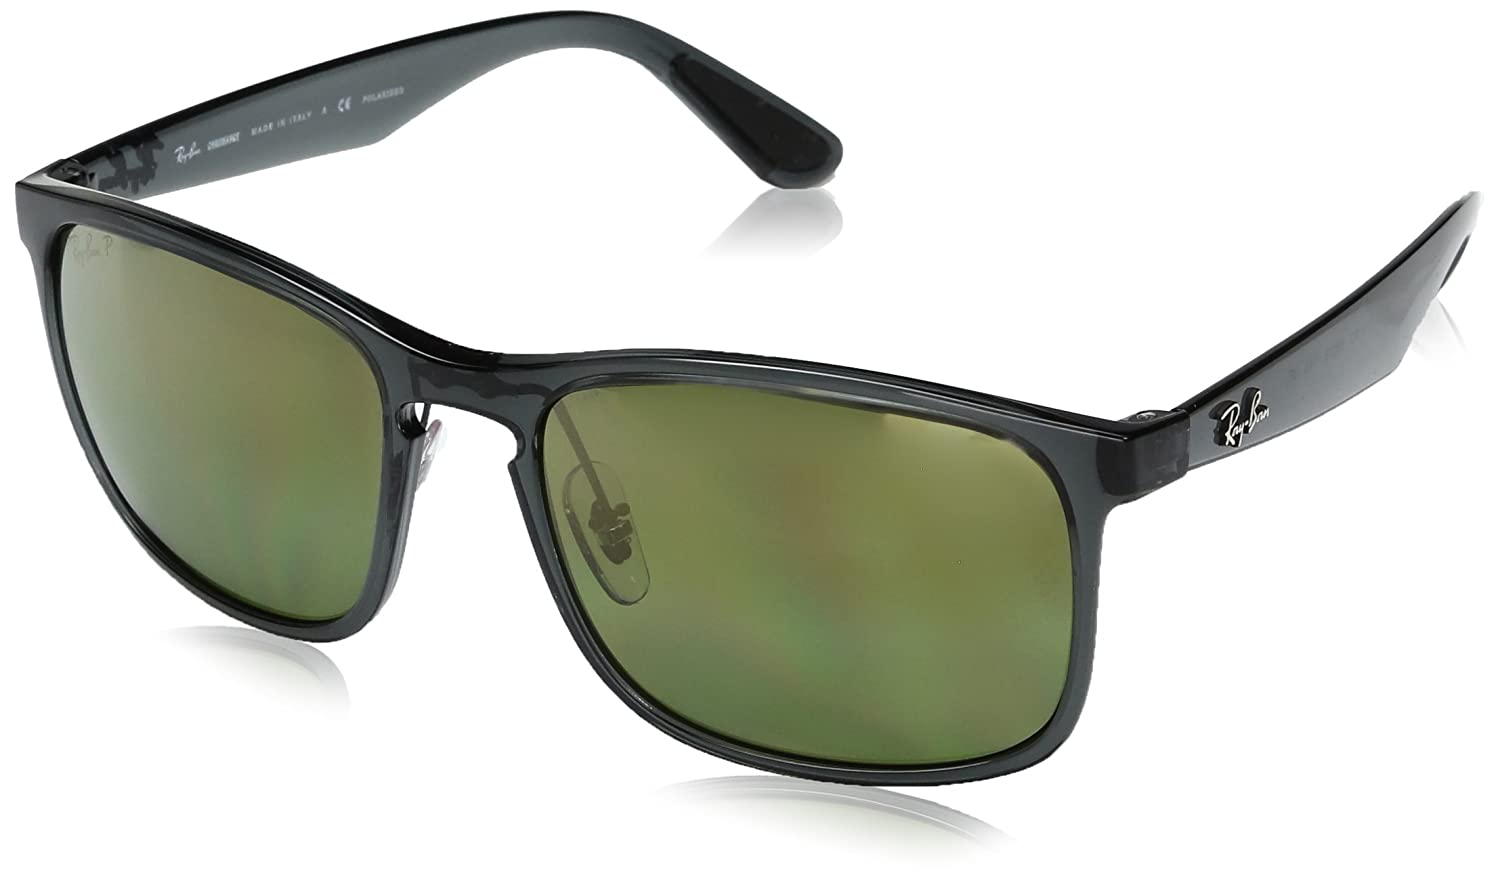 78a28889ec769 Amazon.com  Ray-Ban RB4264 Chromance Lens Square Sunglasses